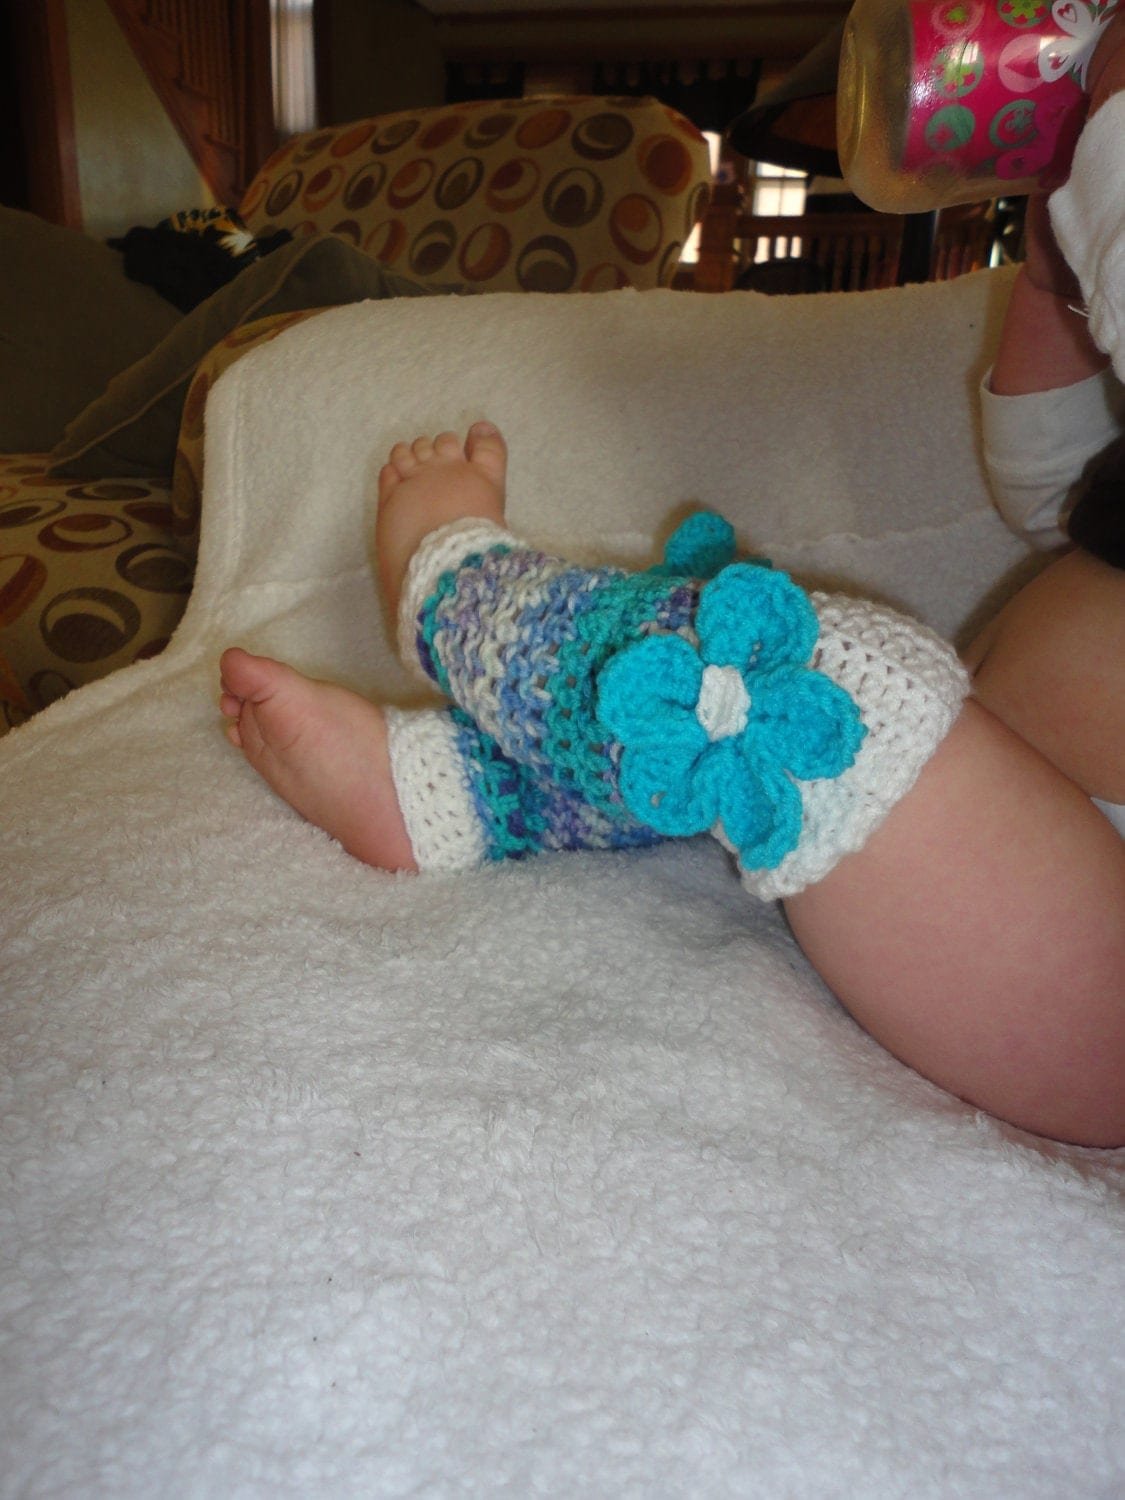 Baby Girl Crochet White and Turquoise Leg Warmers with Spiral Flower Size 0-24 Months - sewcroco